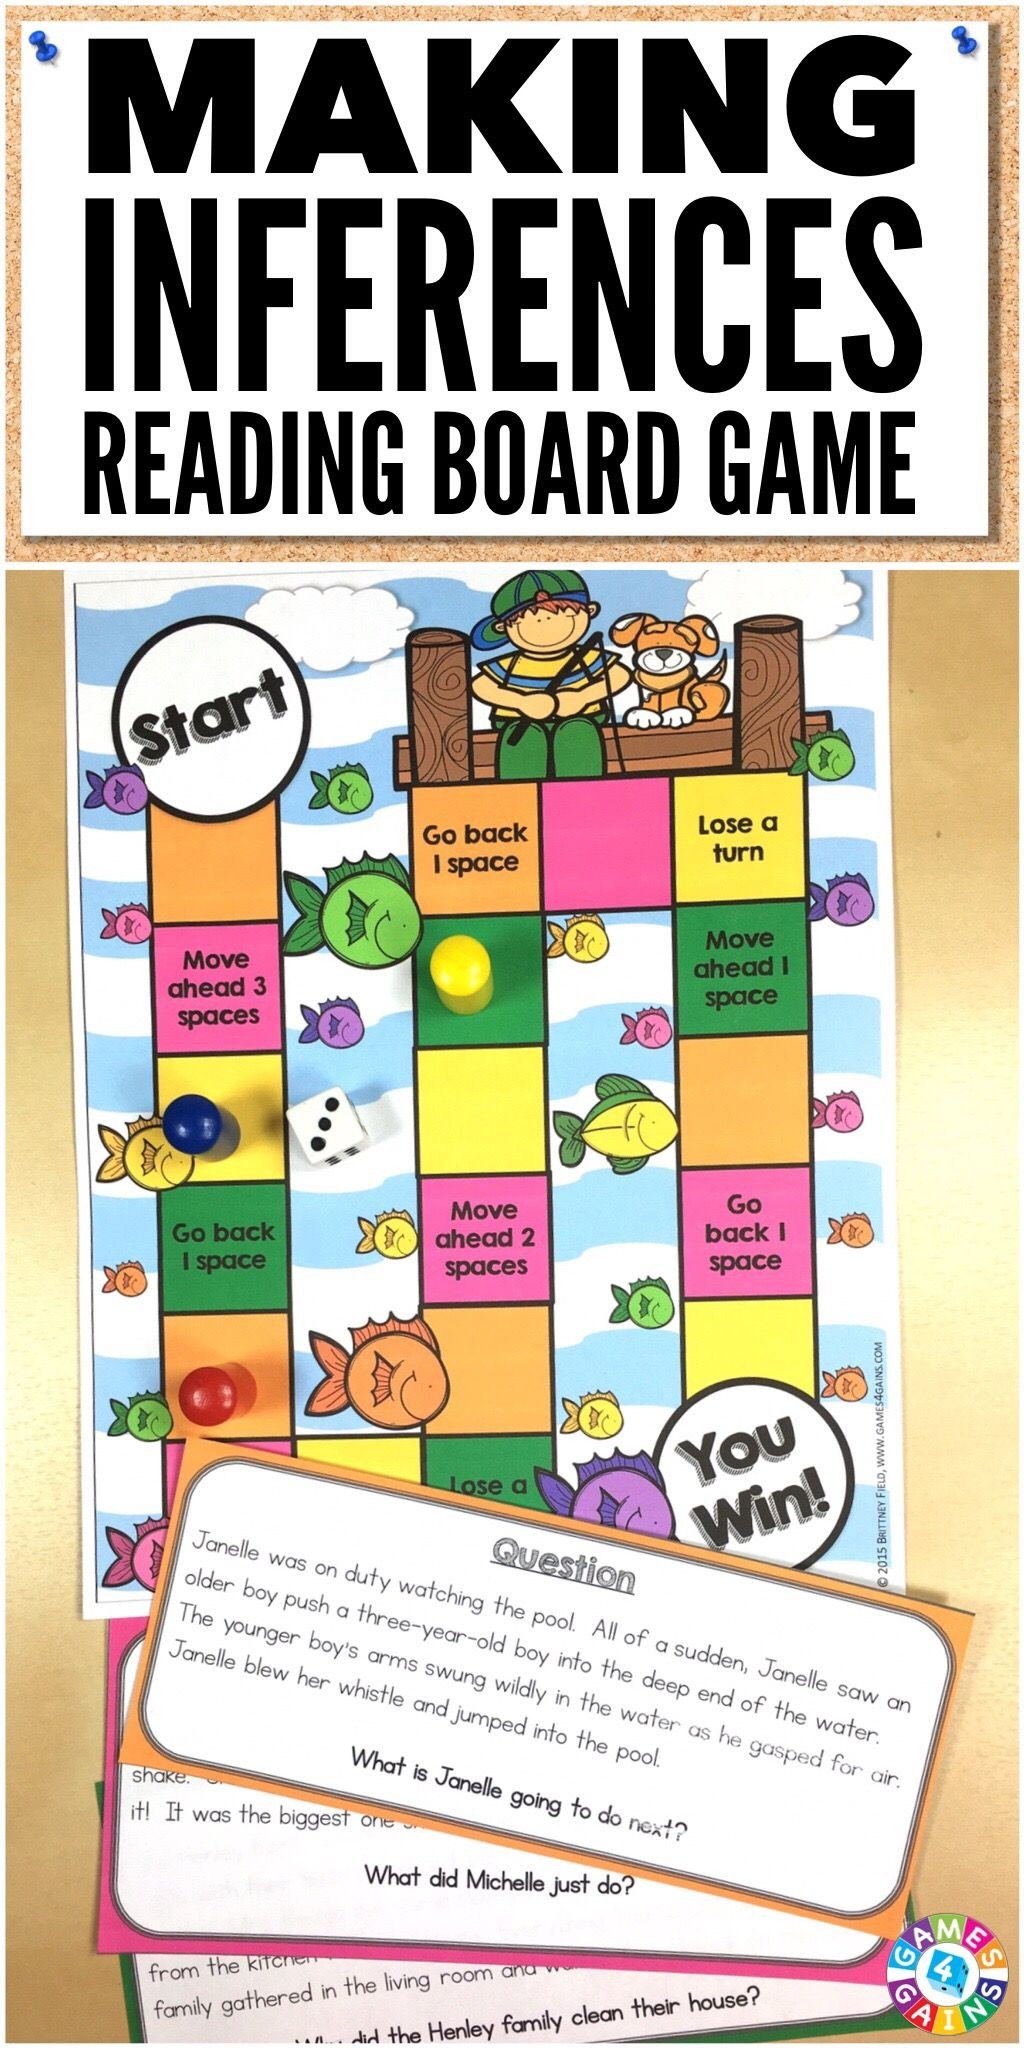 So Easy To Use And The Stories Were So Relatable To The Kids Making Inferences Can Be Reading Comprehension Games Inferencing Task Cards Inference Activities [ 2048 x 1024 Pixel ]